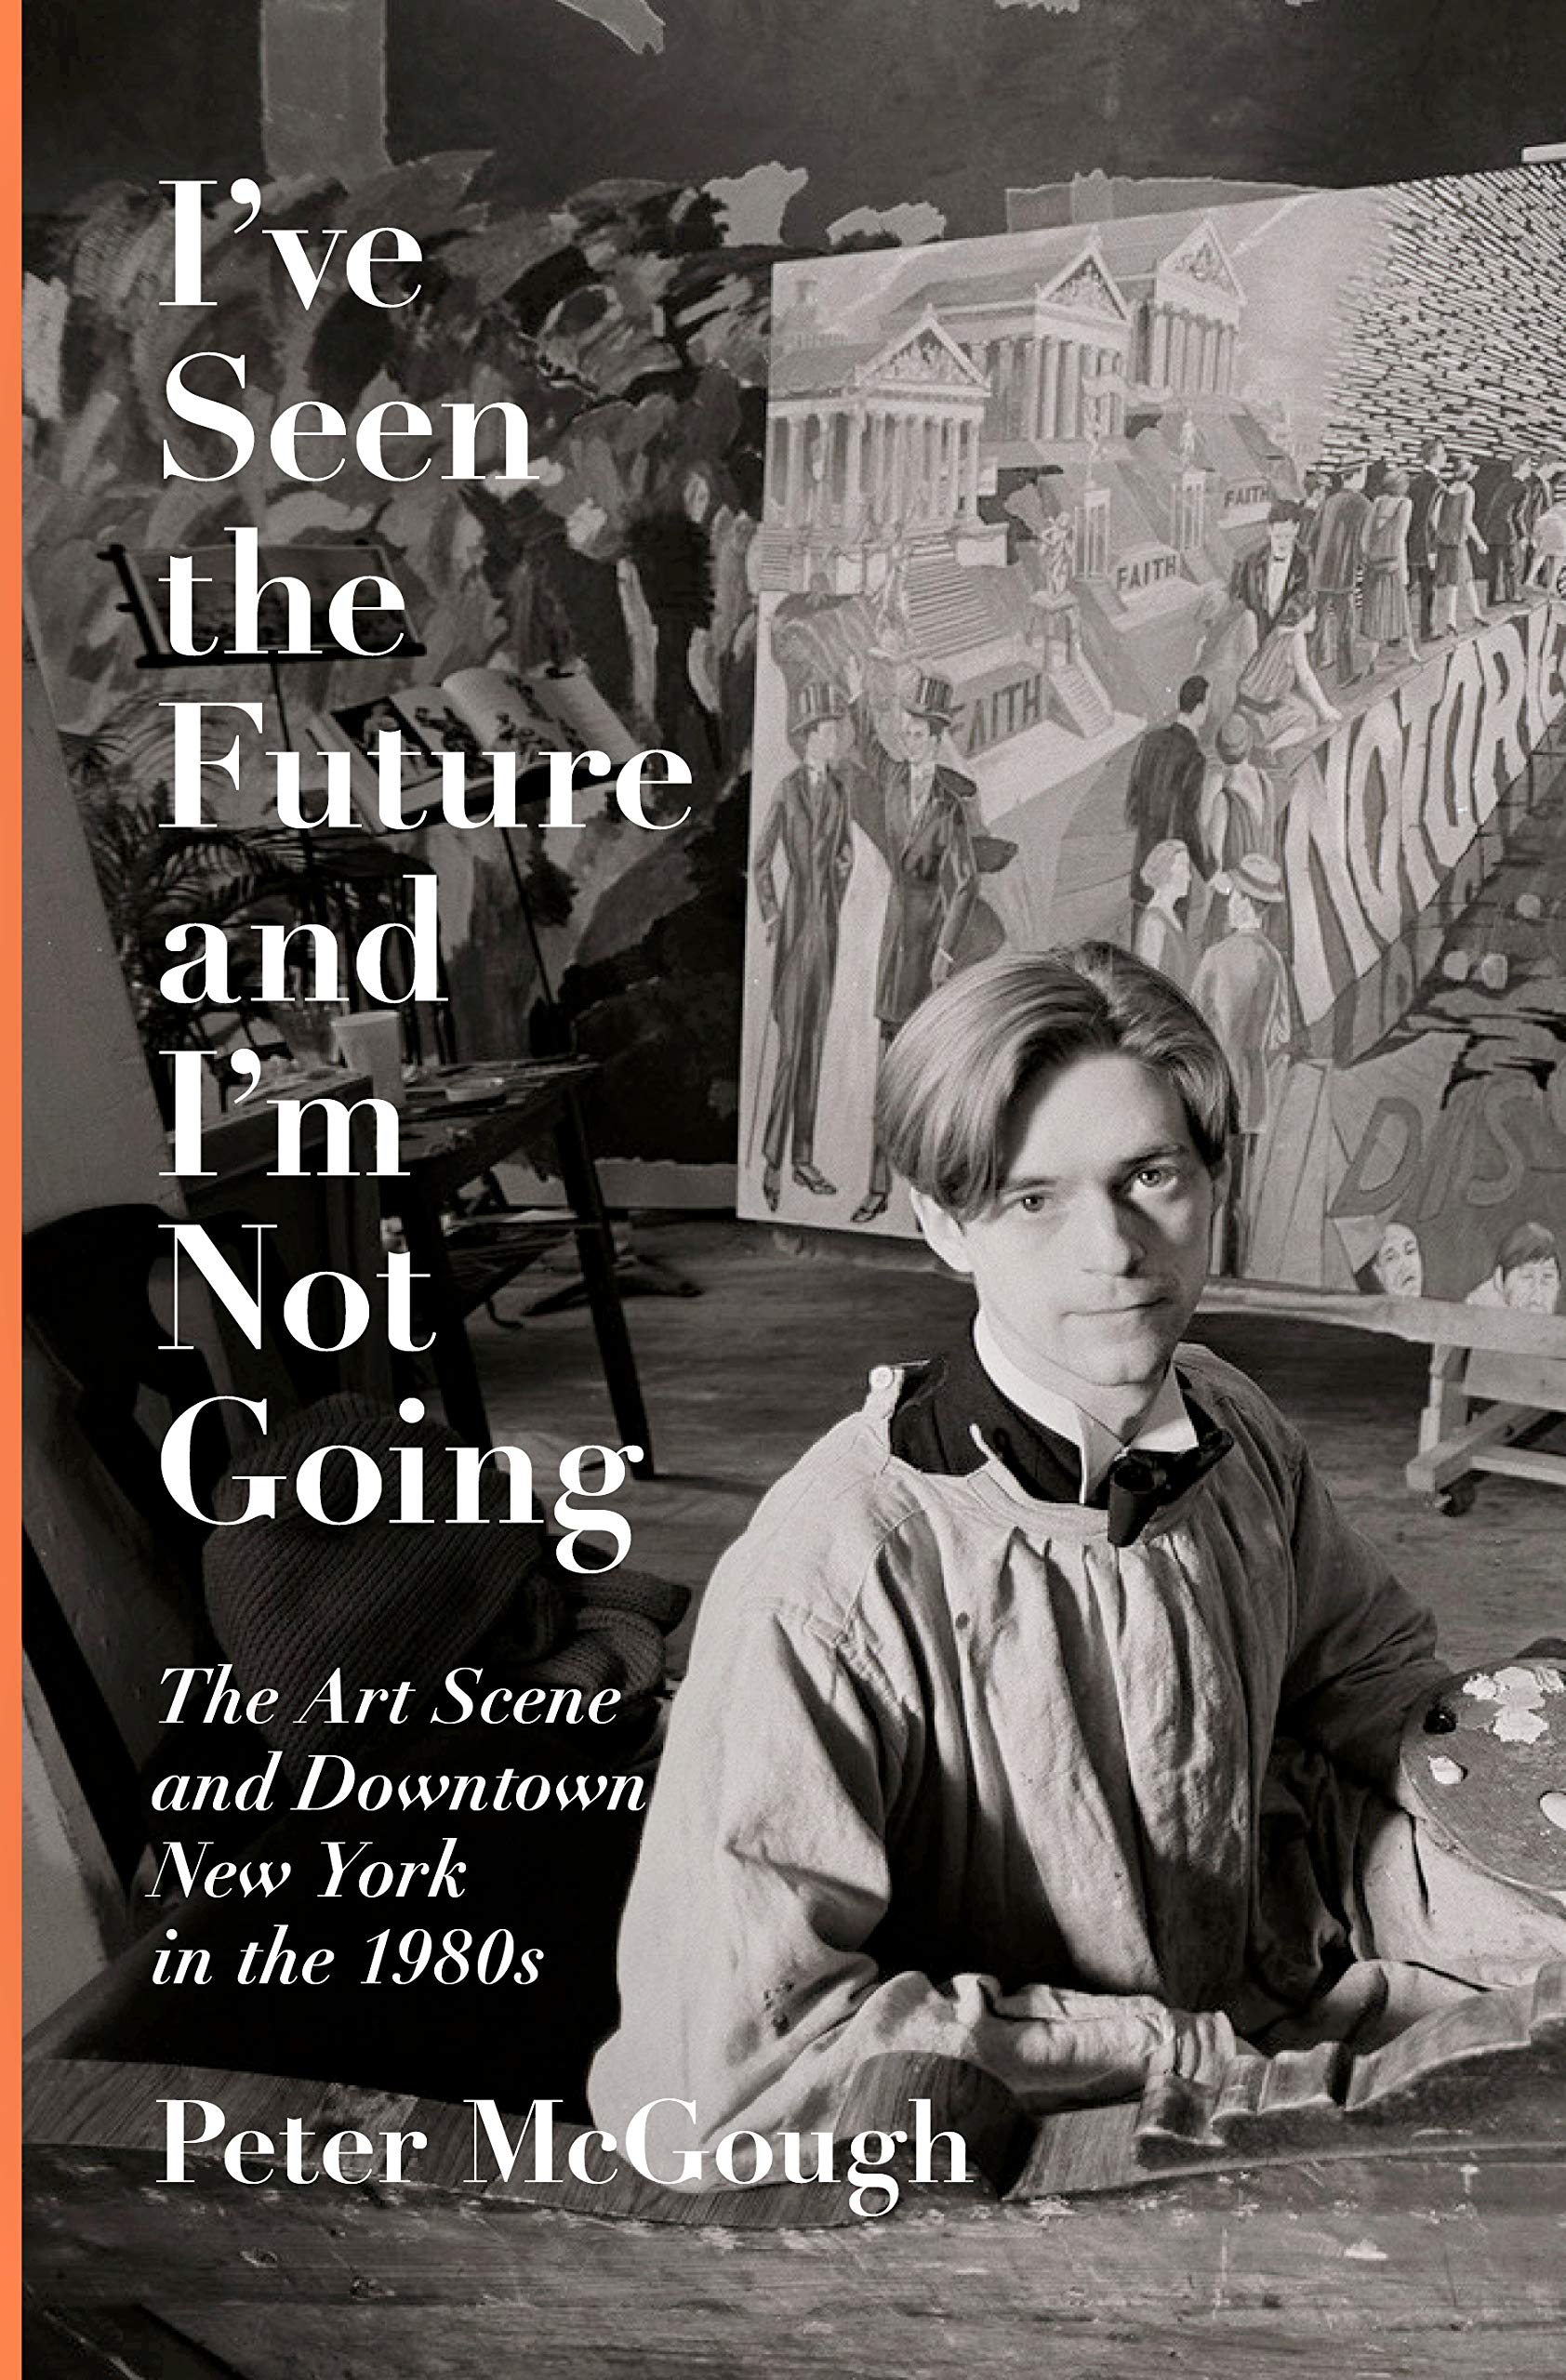 Book Launch: I've Seen The Future and I'm Not Going by Peter McGough